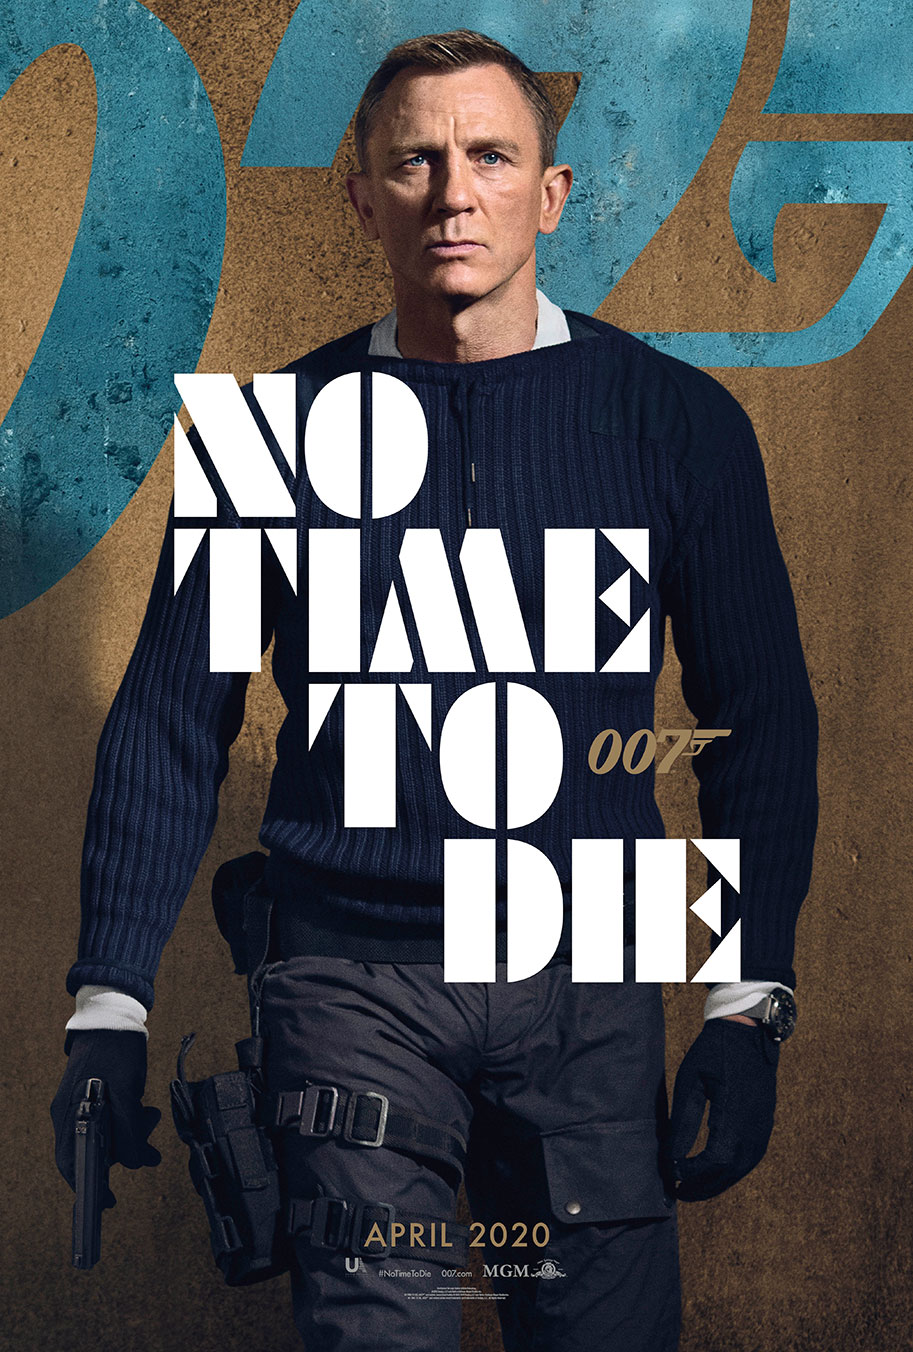 NO TIME TO DIE POSTER (#11 OF 12) - OKAY BHARGAV